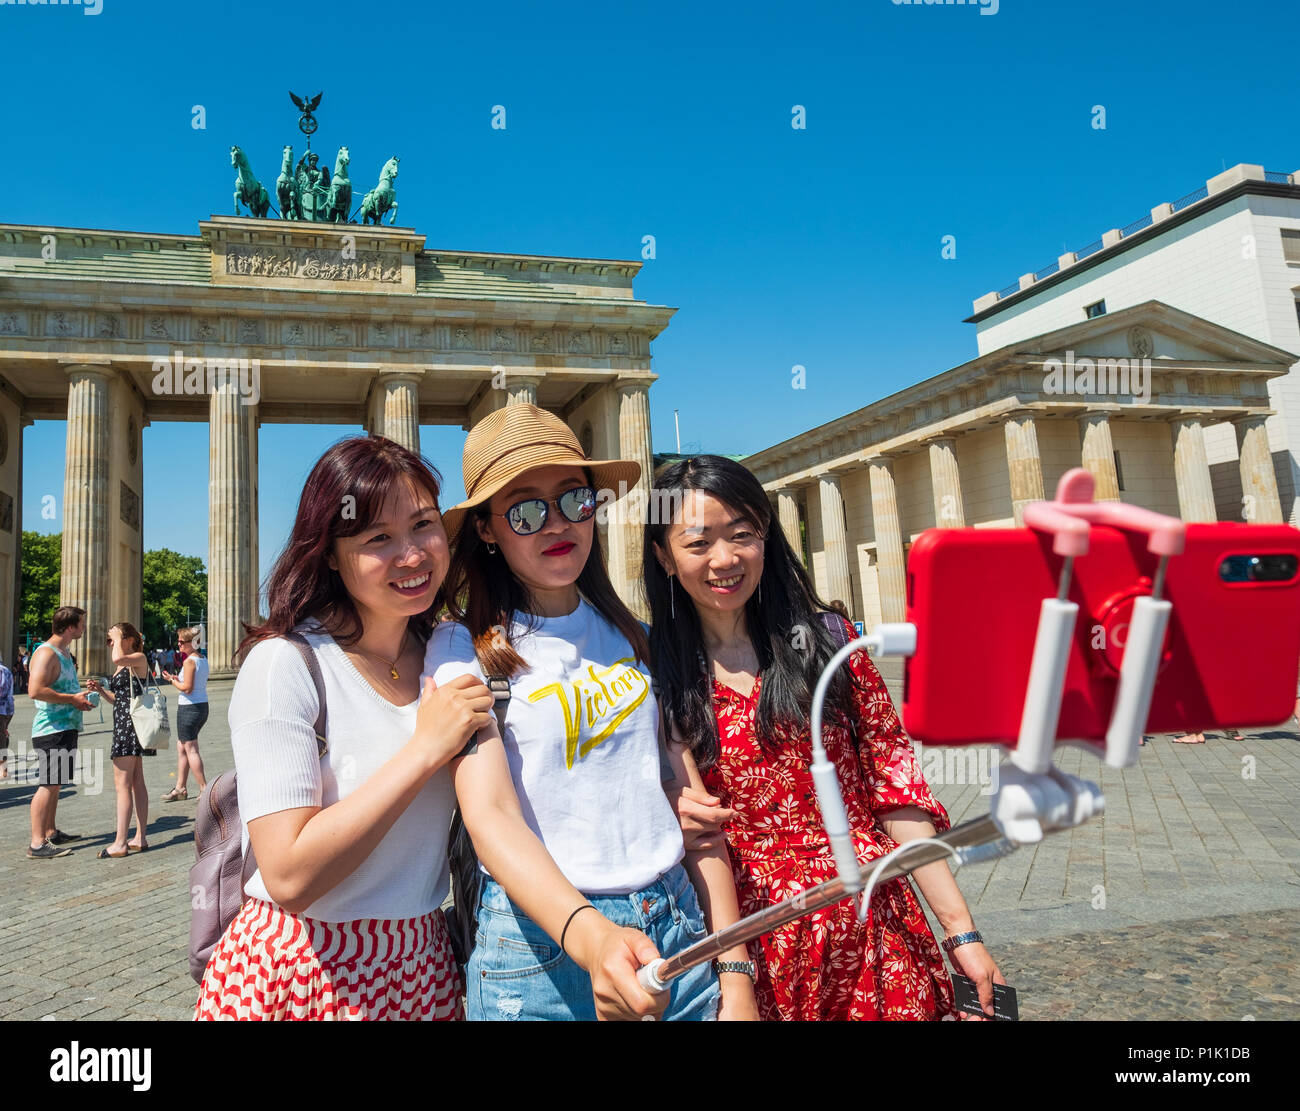 Female Chinese tourists posing with selfie stick in frontt of Brandenburg Gate in Berlin, Germany - Stock Image